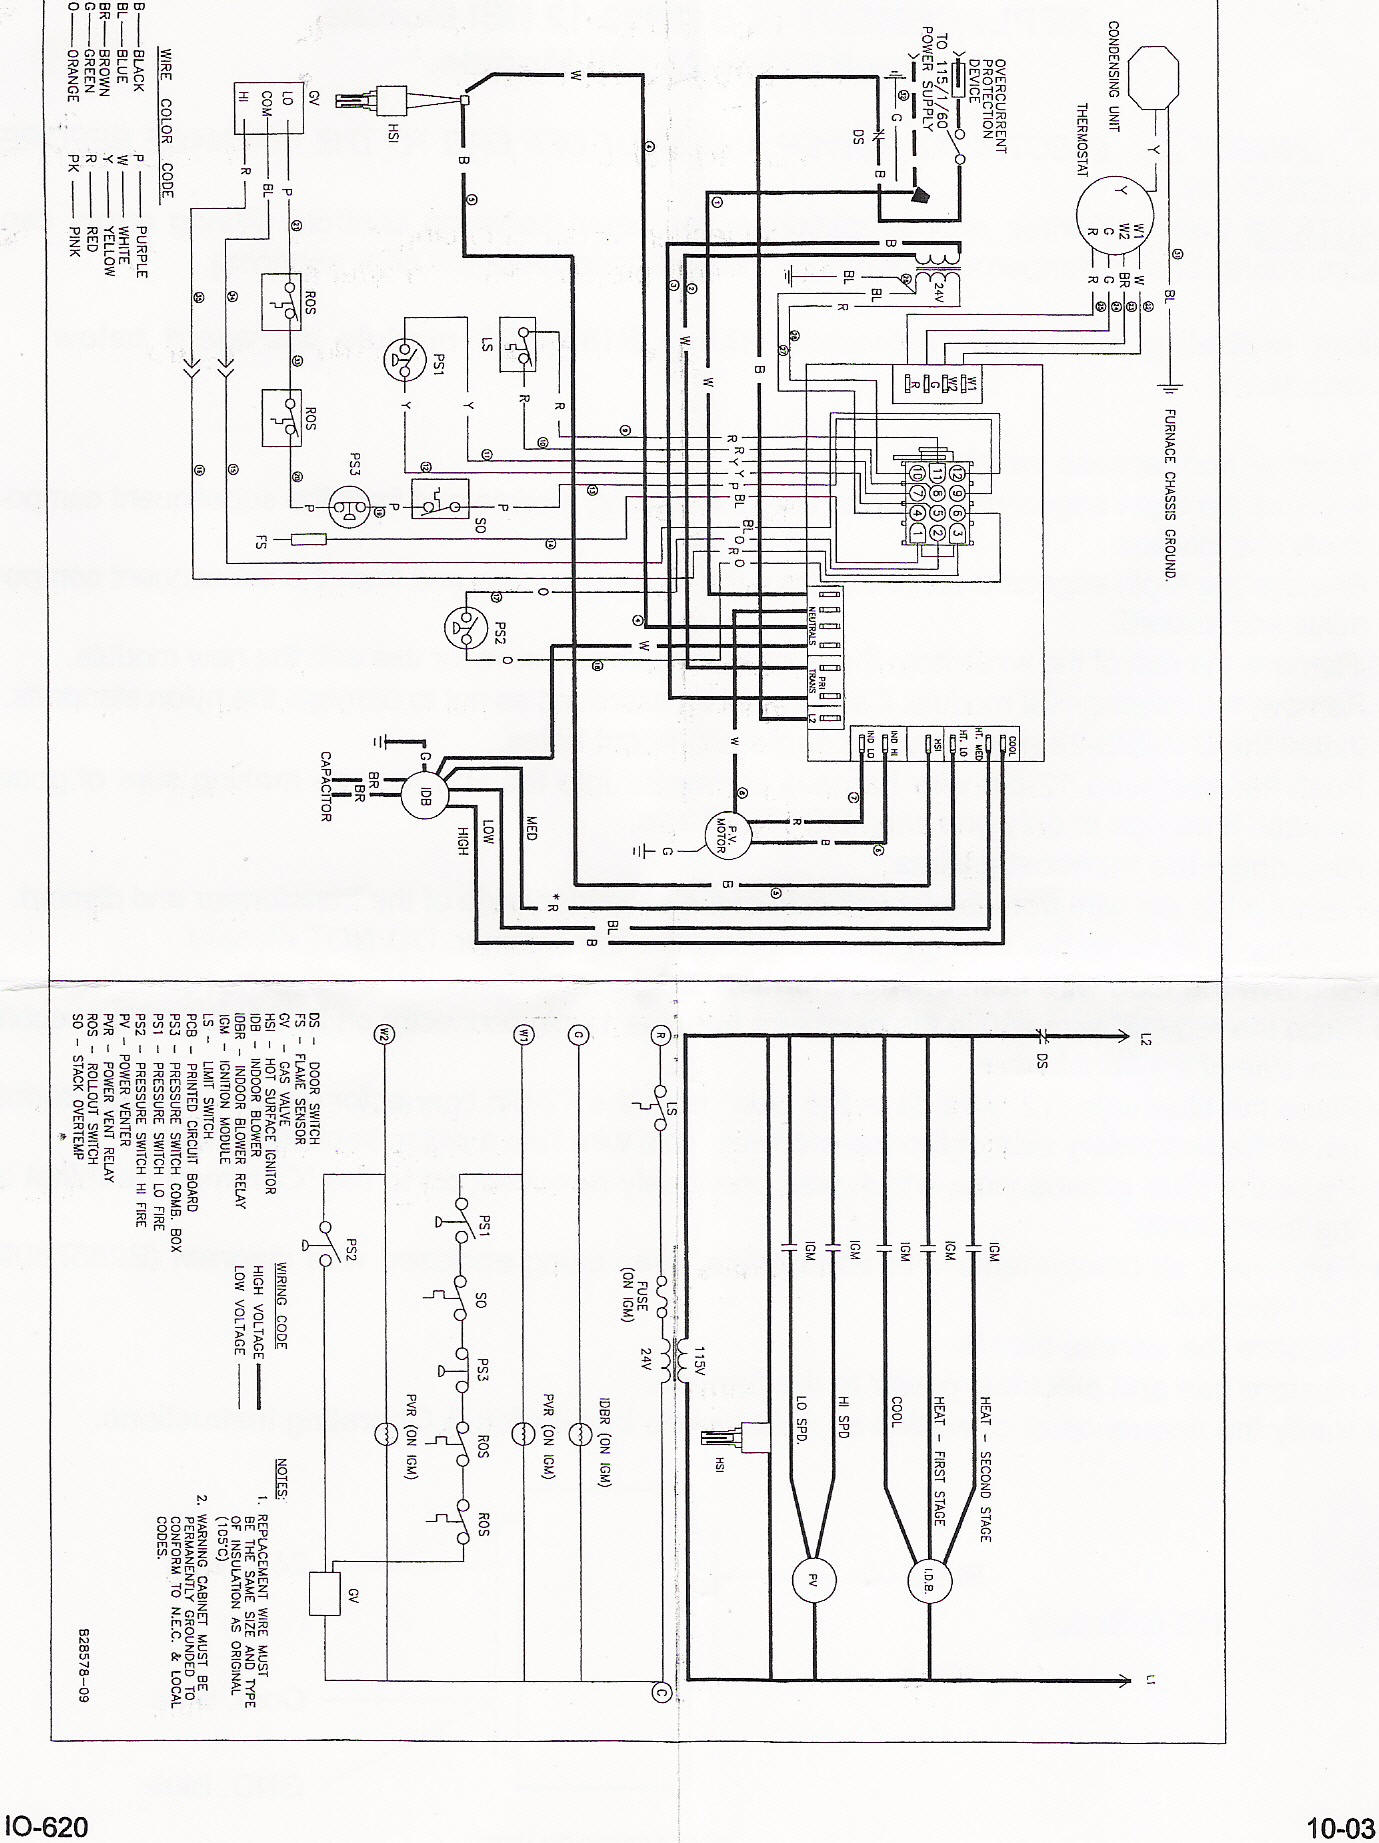 goodman control board b18099 23 instructions rh myhvacparts com goodman furnace control board wiring diagram Goodman a C Wiring Diagram